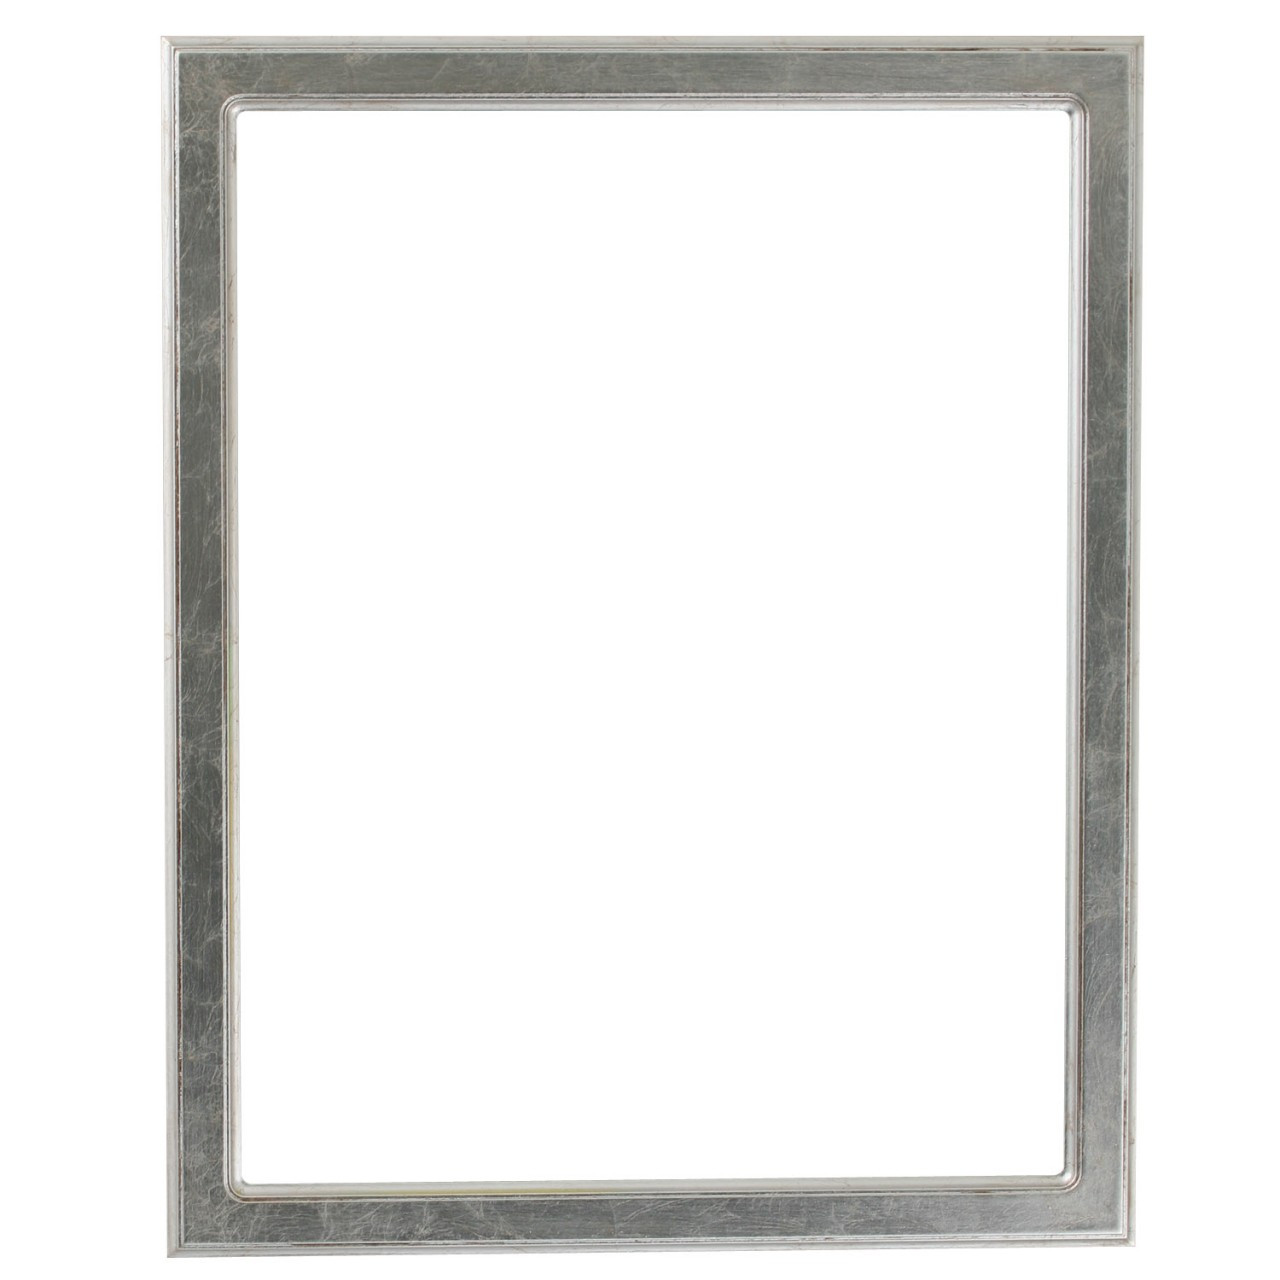 1f594da87c45 Rectangle Frame in Silver Leaf Finish with Brown Antique